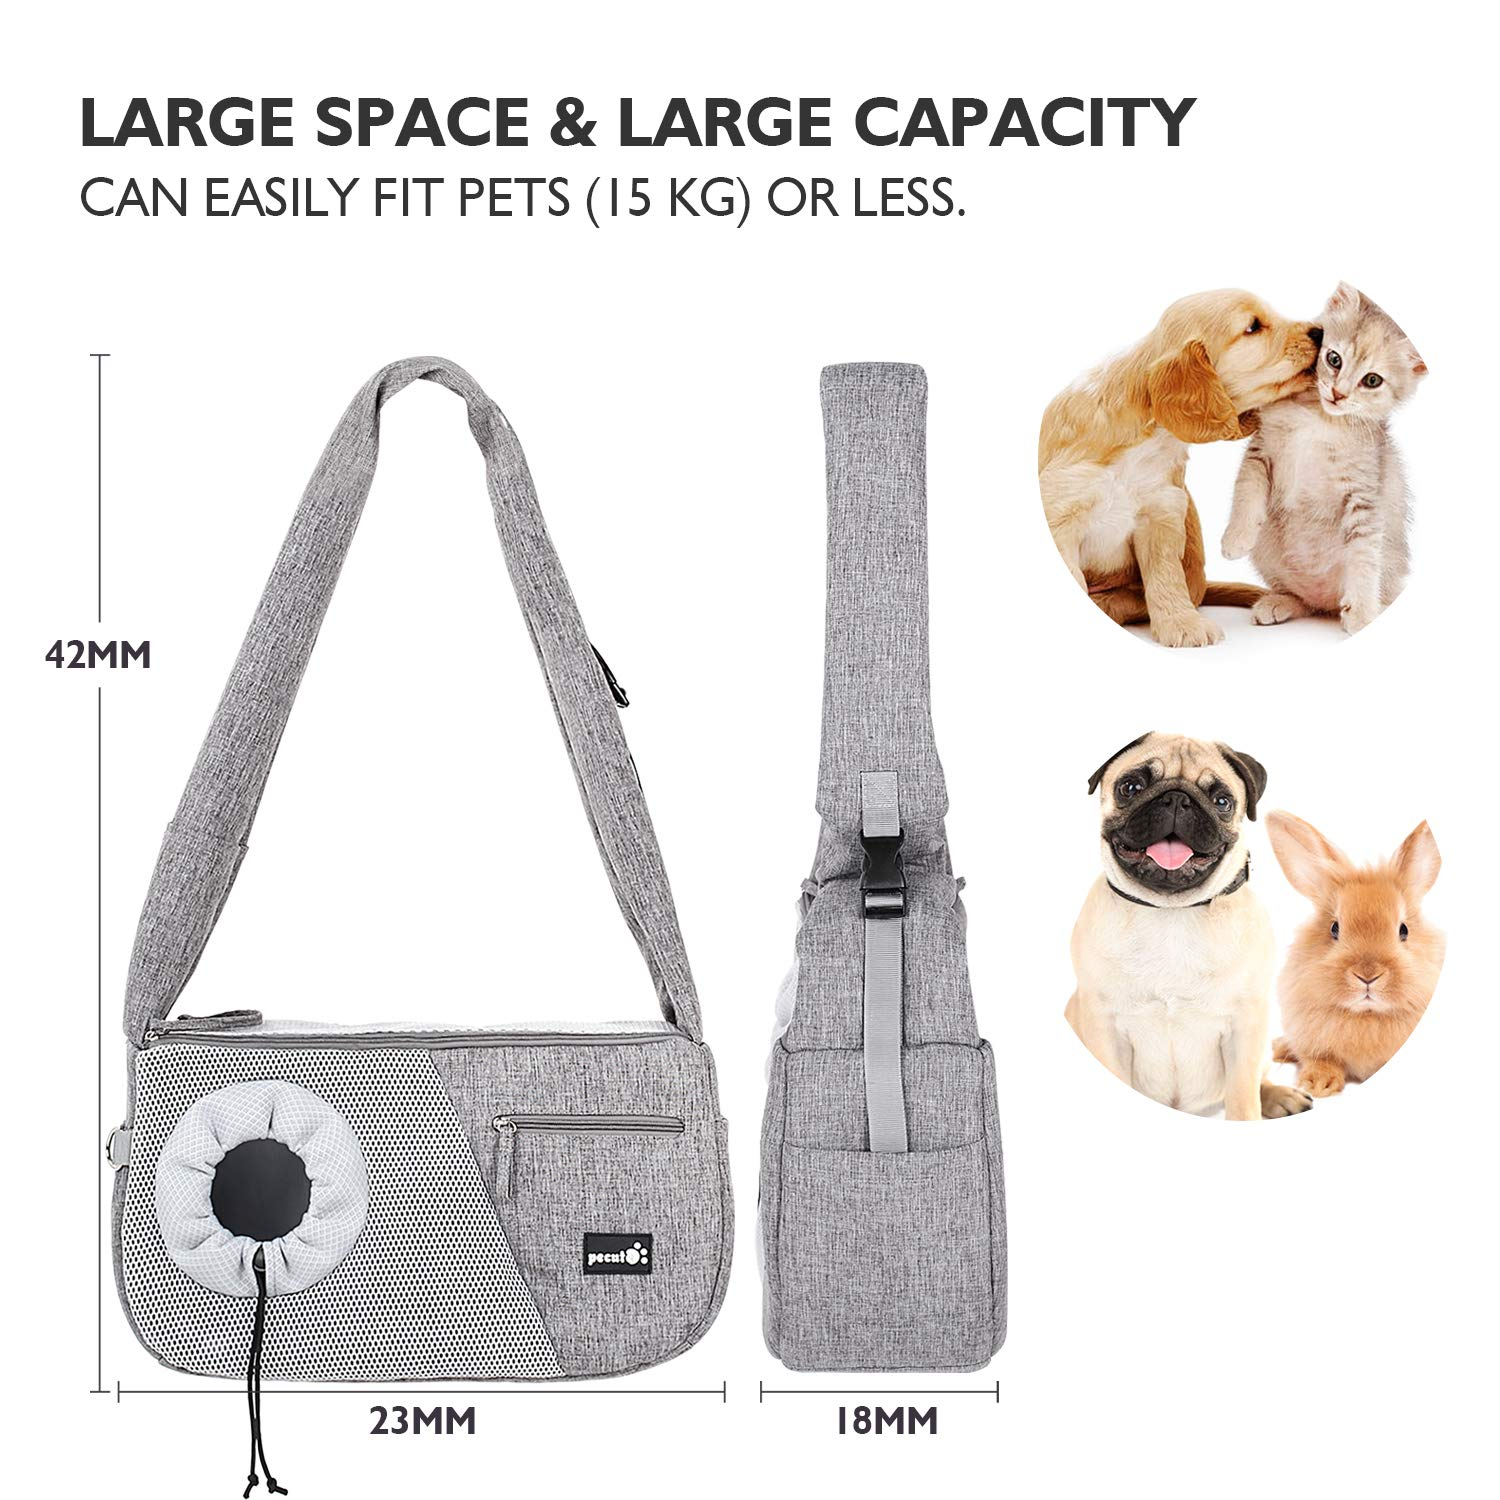 Pecute Pet Sling Bag Carrier, Small Dog Cat Carrier with Breathable Window Comfortable Decompression Hand Free Pet Puppy Outdoor Travel Bag Tote Reversible, Maximum 15kg